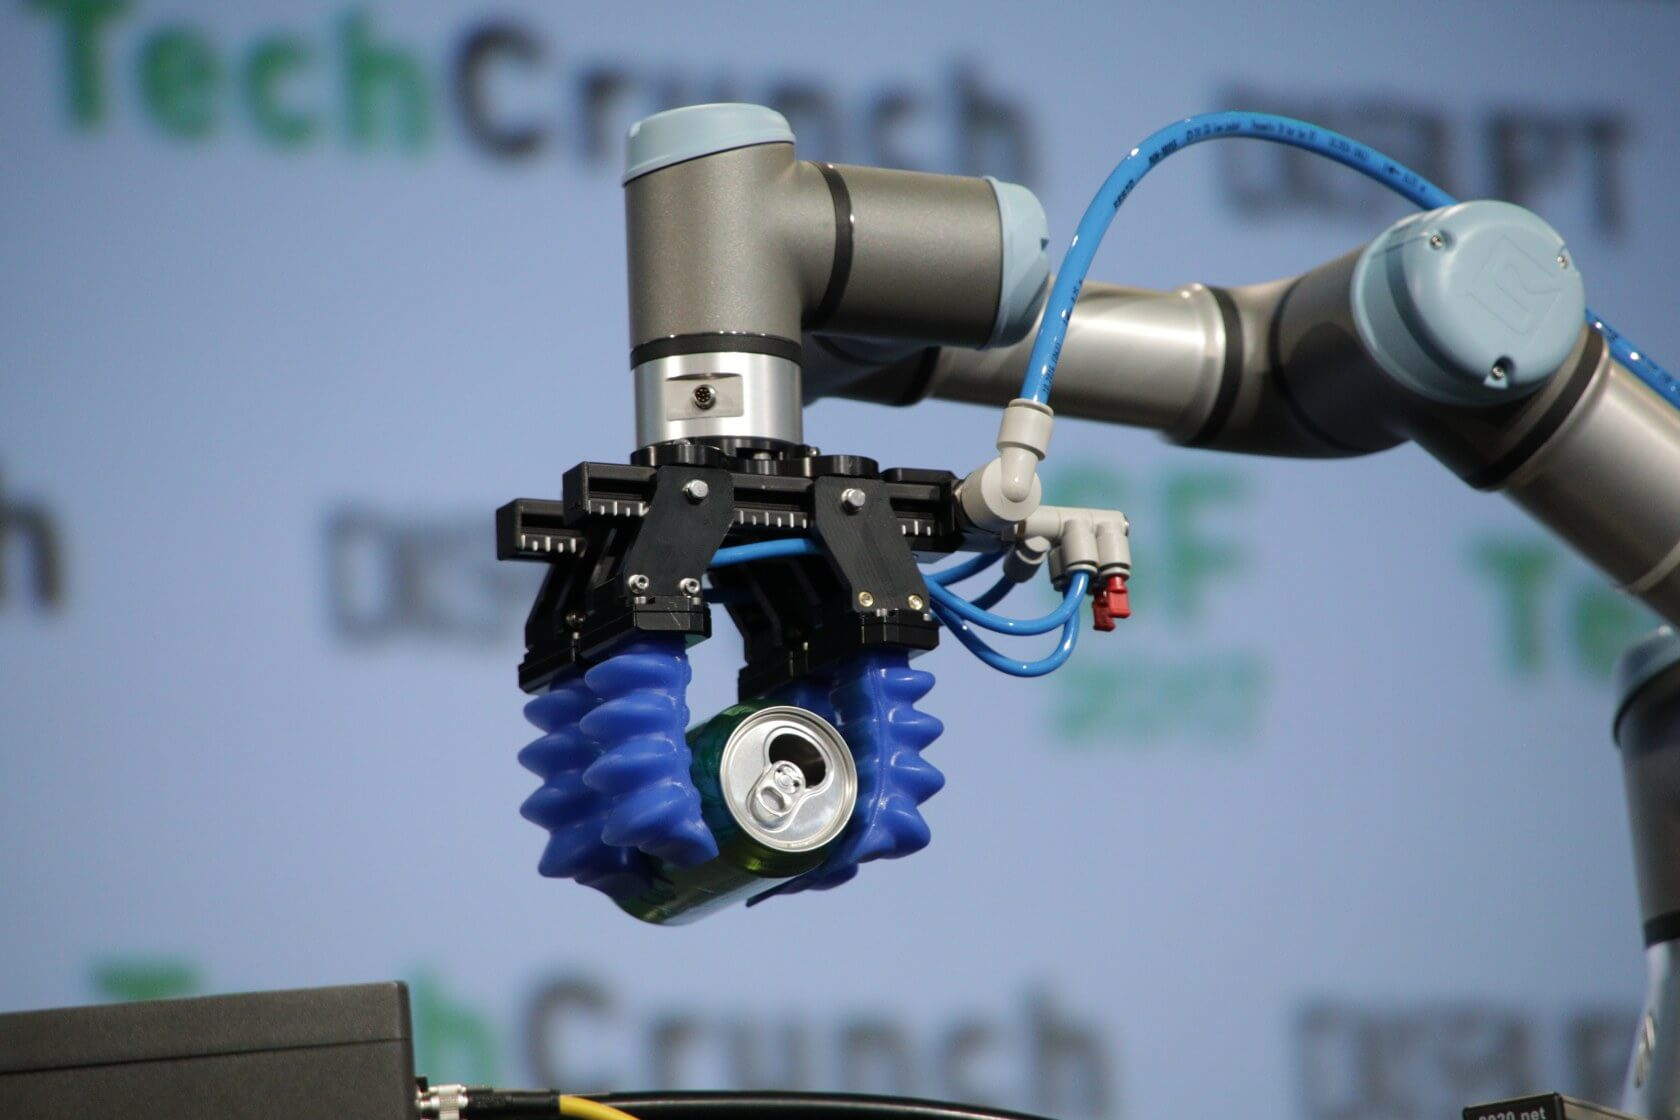 Researchers create a robotic hand that can 'sweat'